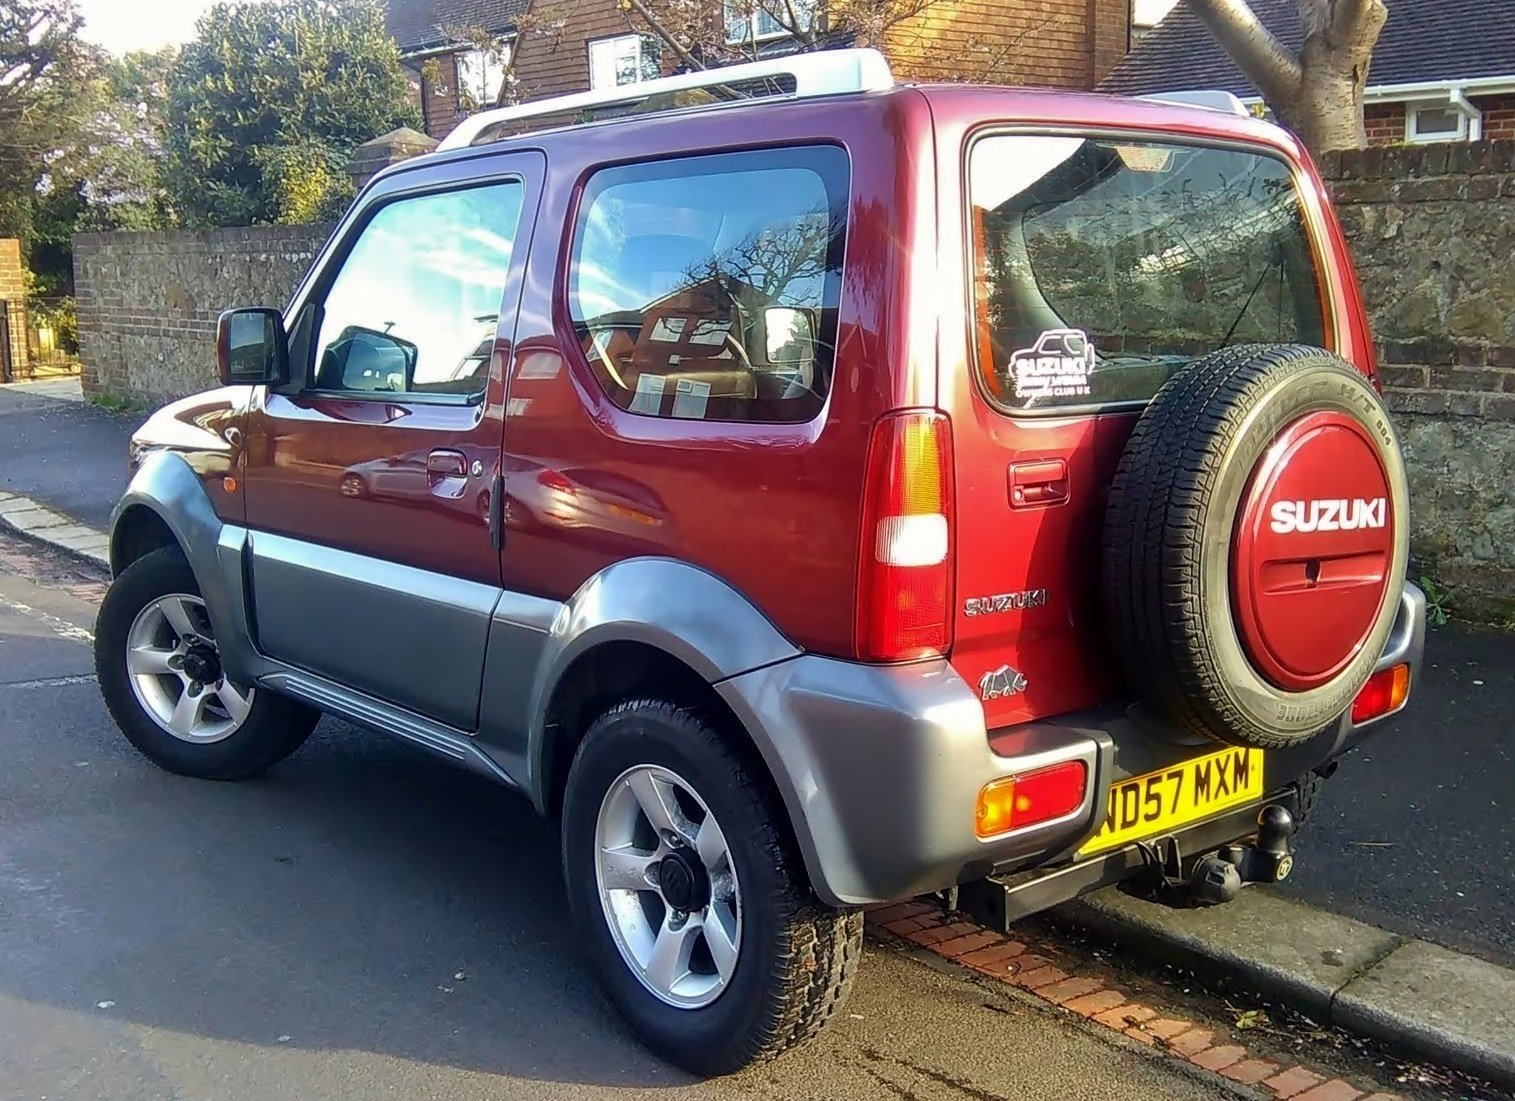 2007 Jimny PX SWAP Car 4x4 Nissan Toyota Jeep Honda Van For Sale (picture 2 of 6)